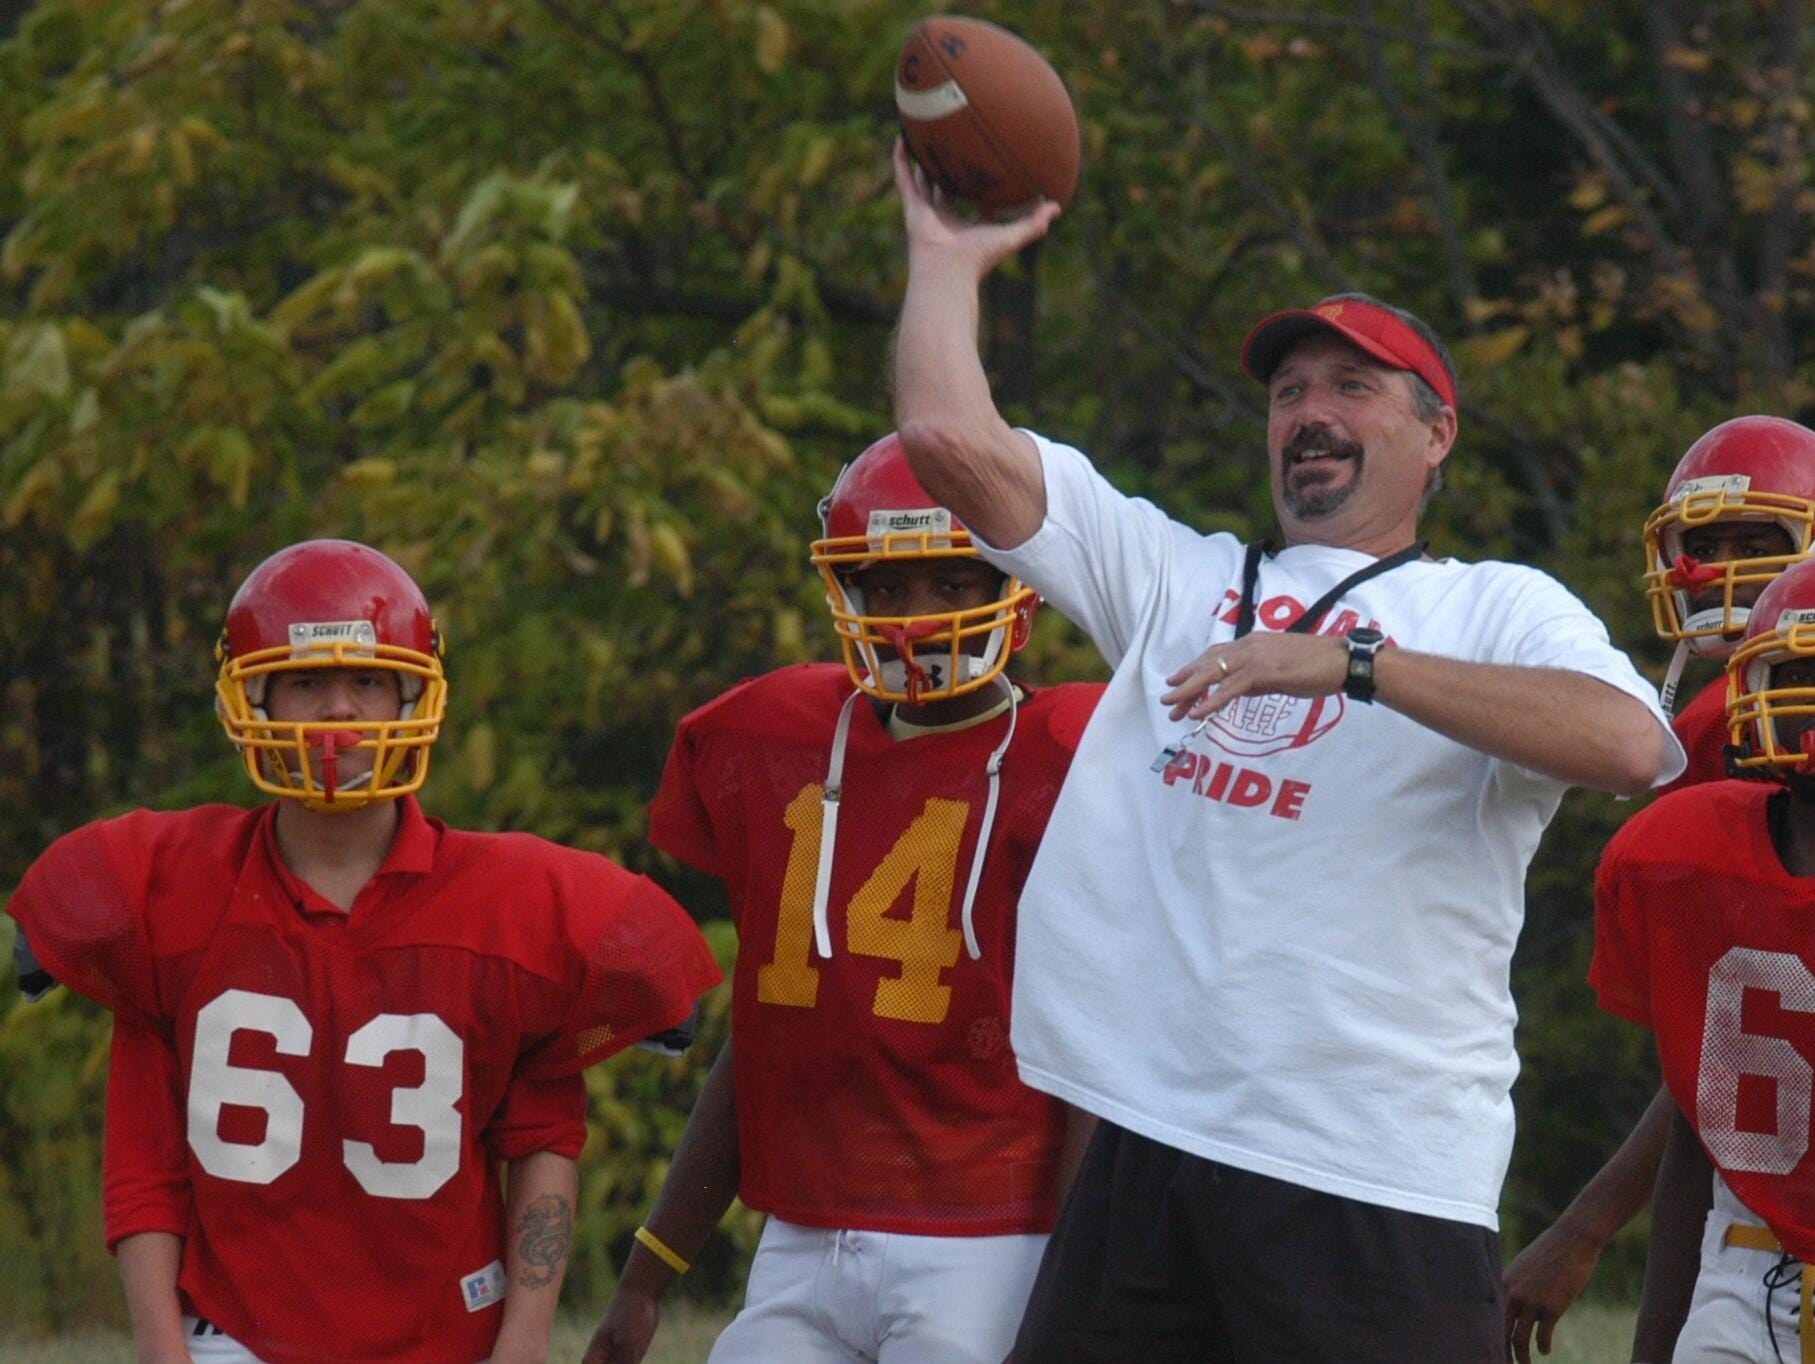 Shown in 2010, North College Hill head football coach Bruce Baarendse performs a passing drill with his players at practice.